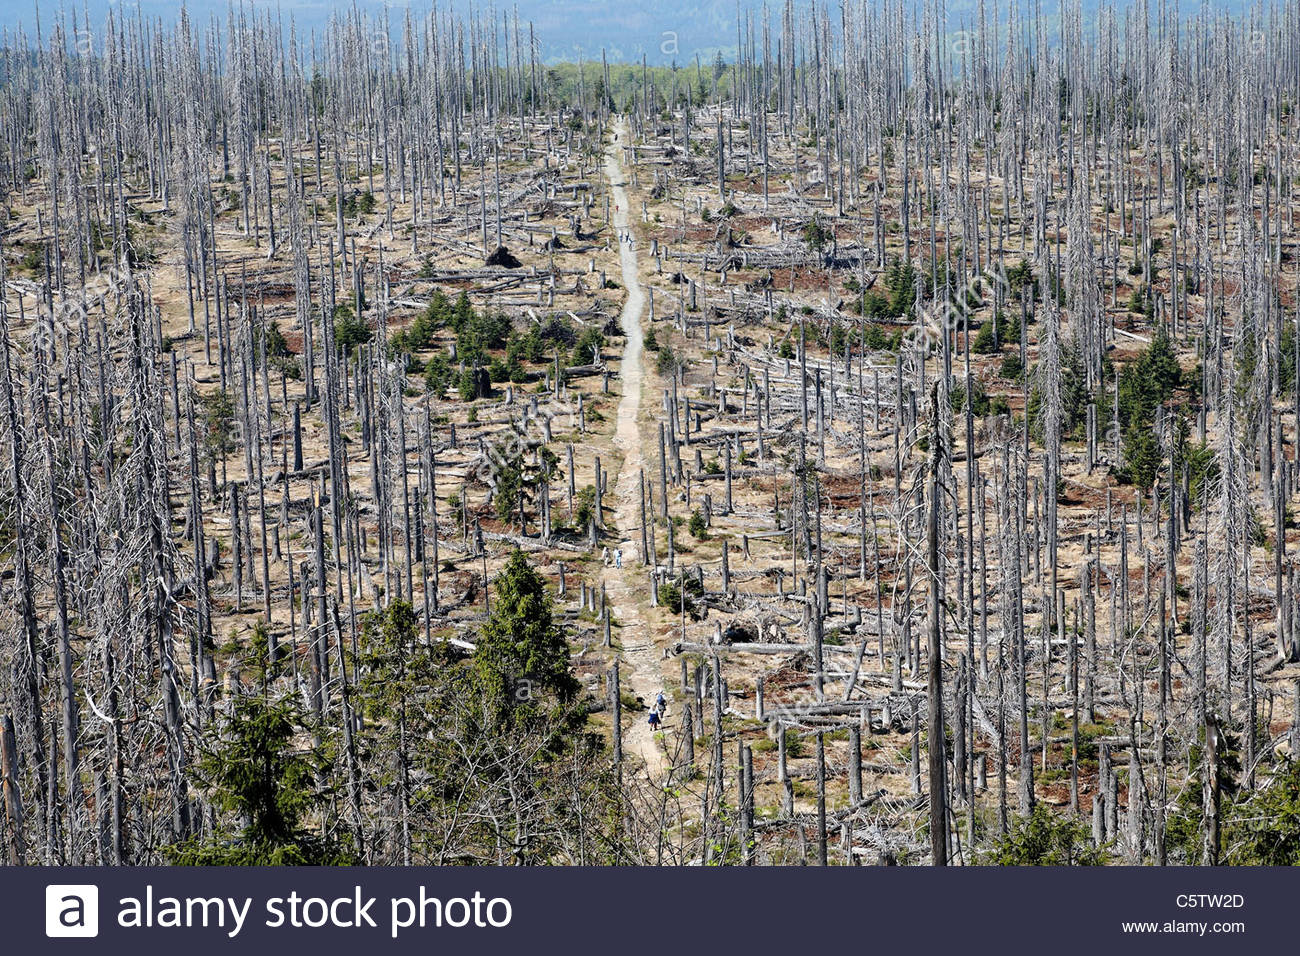 Germany, Bavaria, Lower Bavaria, Forest with dead spruces at bavarian forest - Stock Image